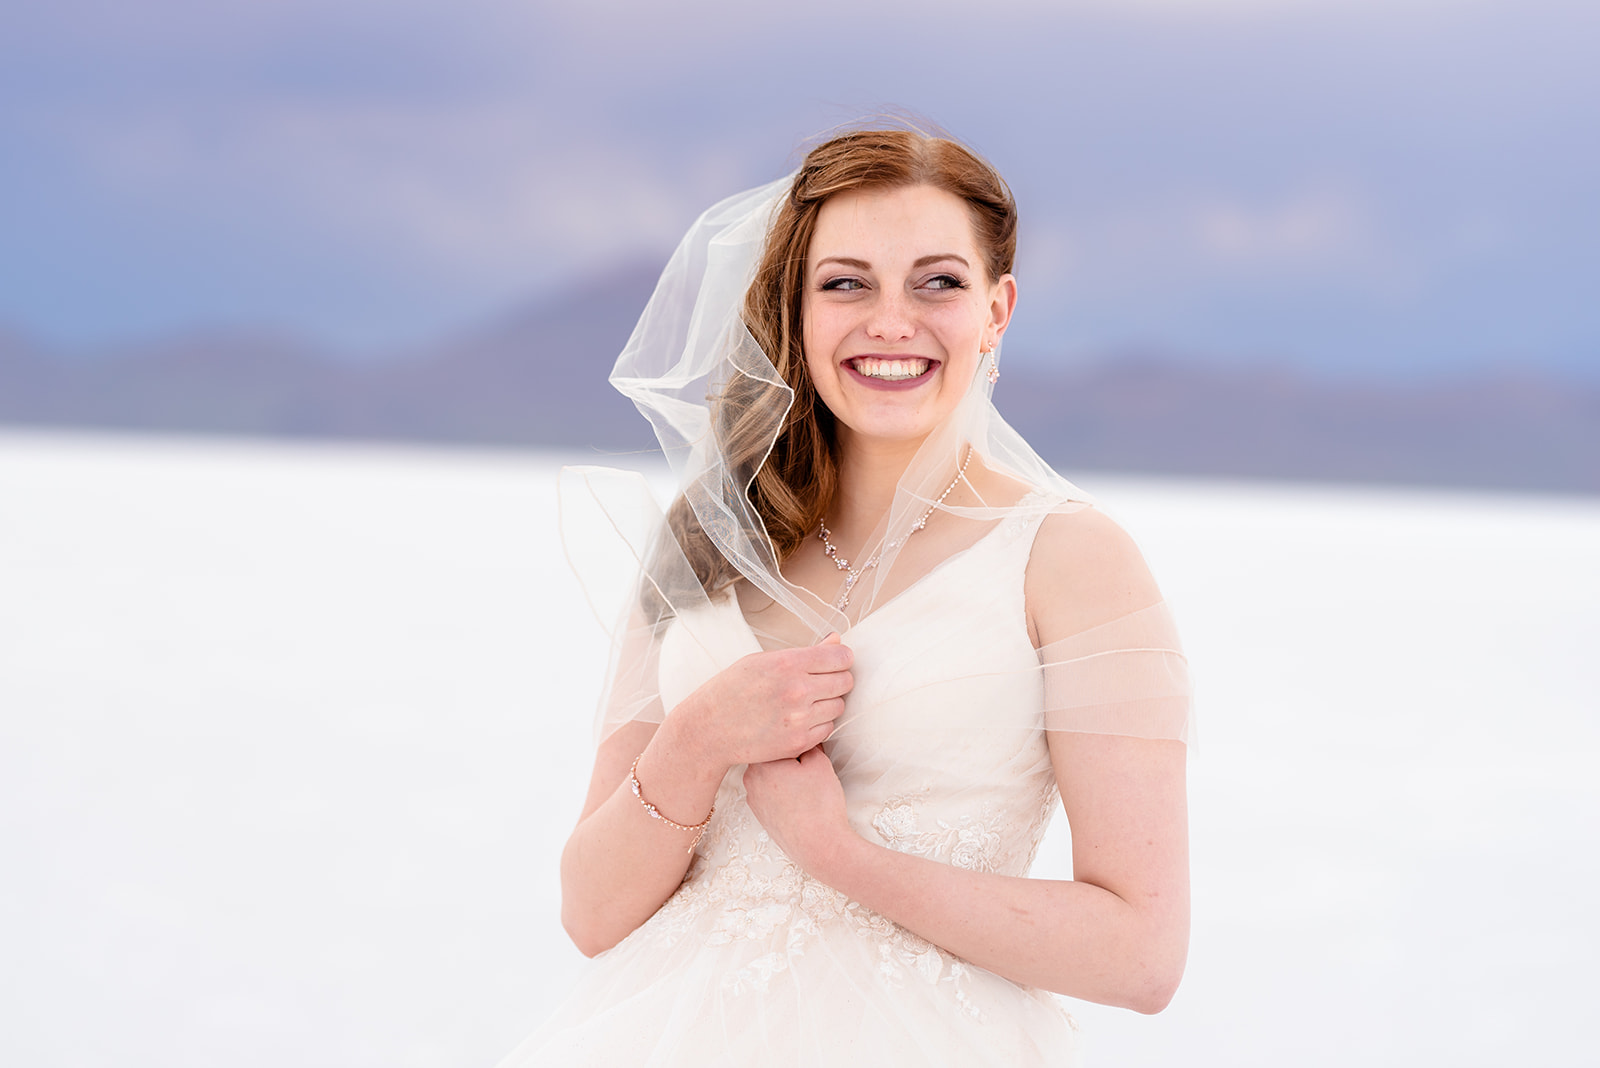 Happiest bridal portrait of Adri at the Bonneville Salt Falts in Utah. Embrace the wind! Taken by Coley Cook Photography.